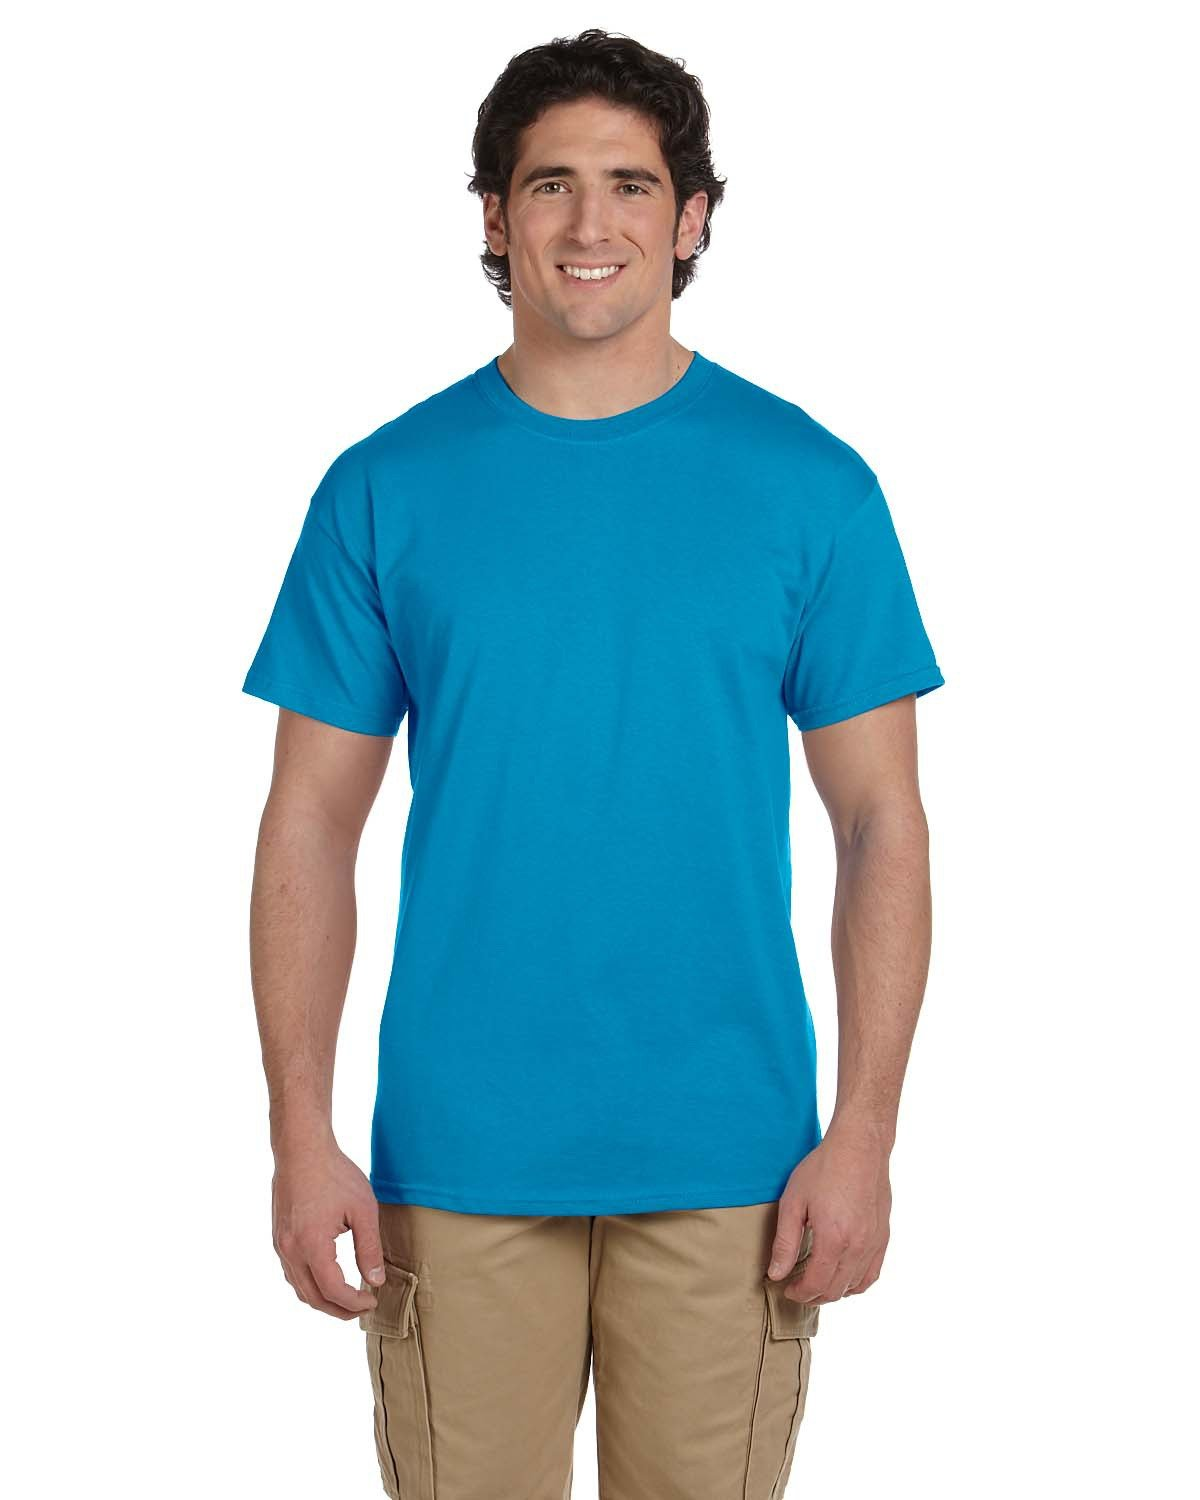 Fruit of the Loom Adult HD Cotton™ T-Shirt PACIFIC BLUE